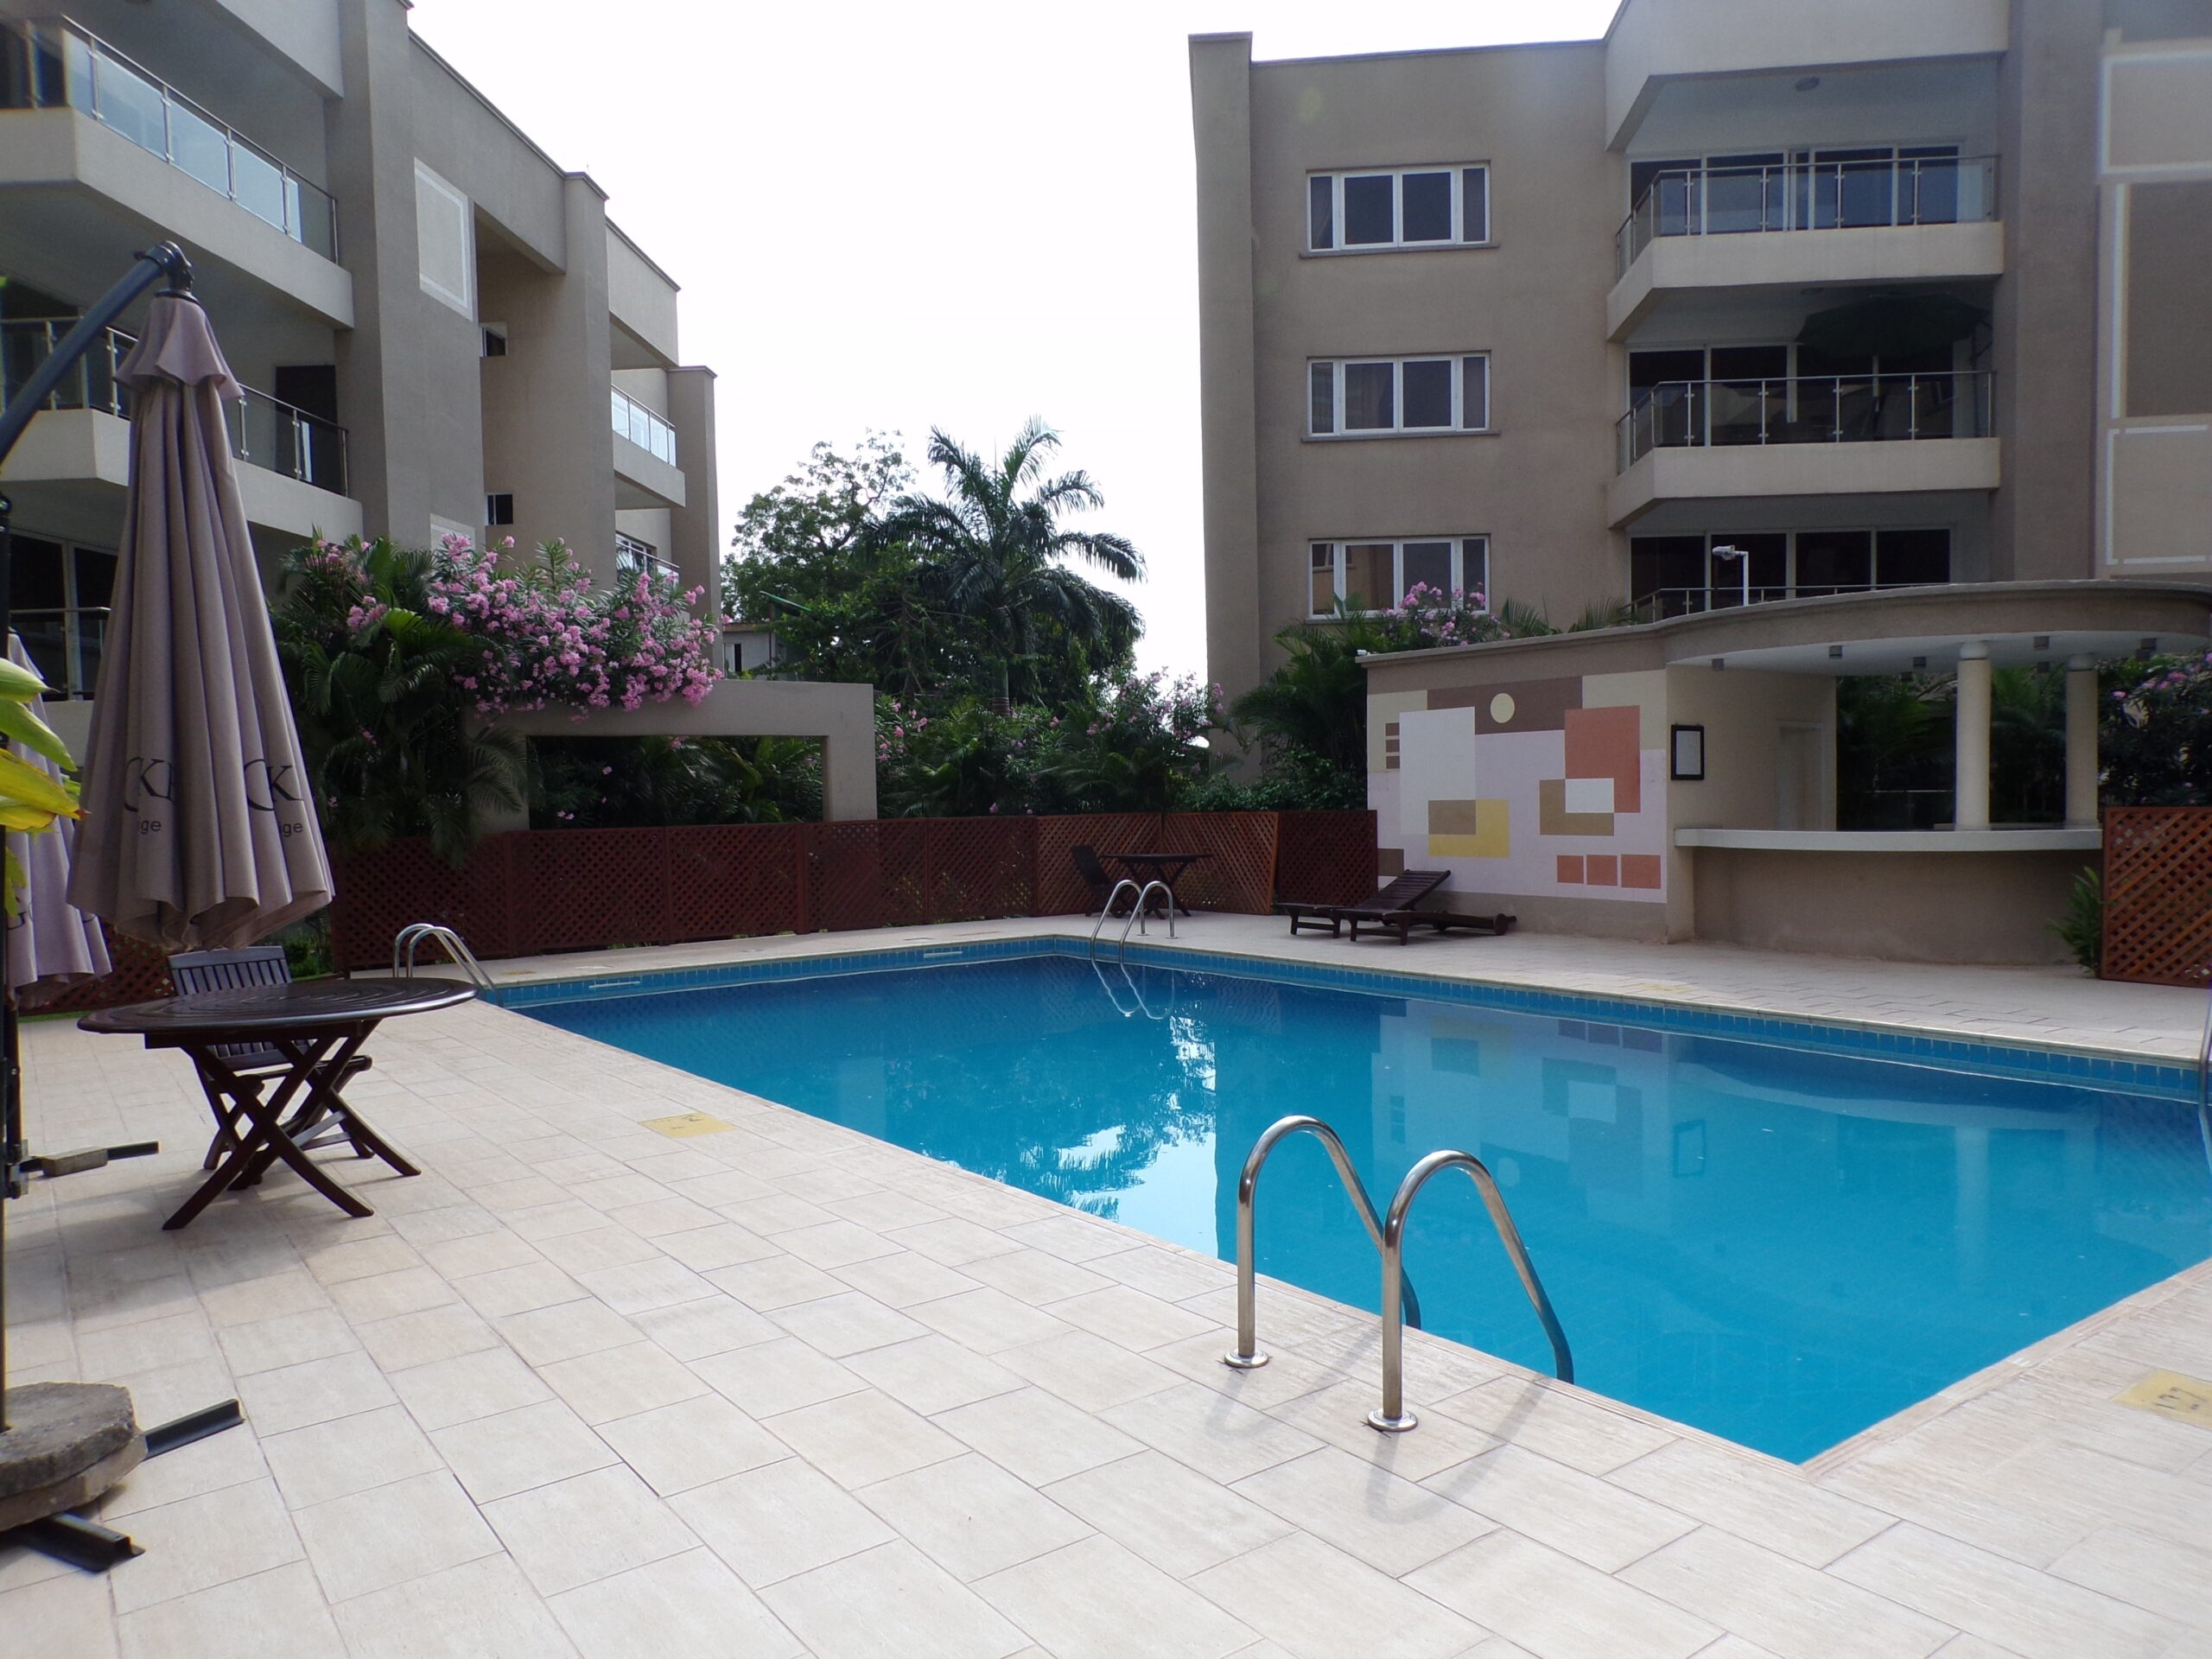 3 BEDROOM APARTMENT FOR SALE AT INDEPENDENCE AVENUE